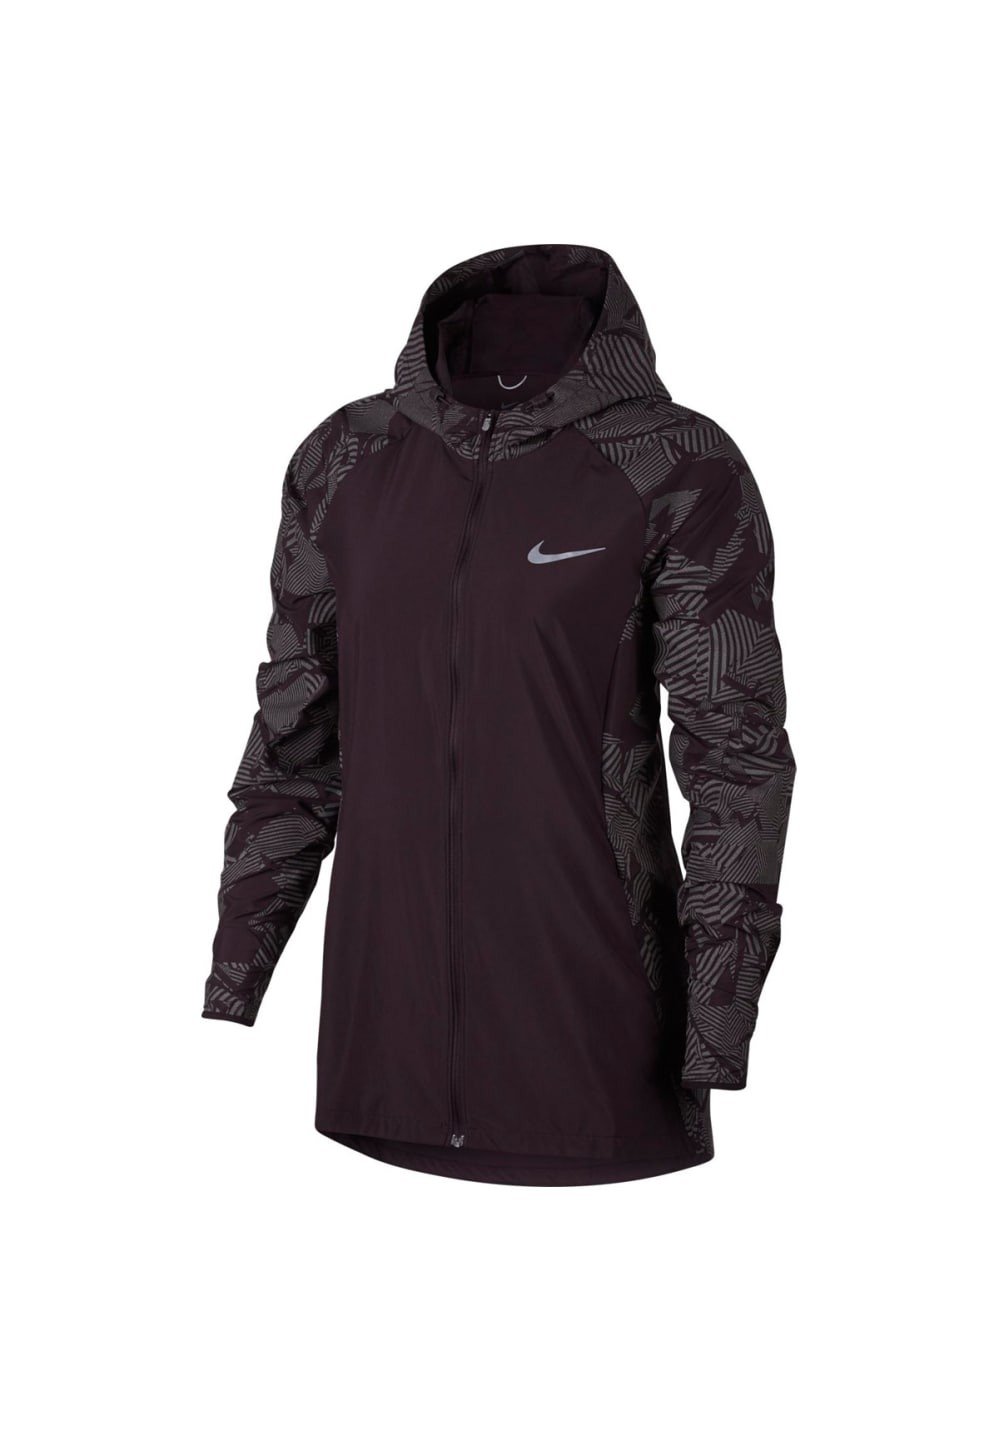 4a818c4afd Next. Nike. Essential Flash Running Jacket - Running jackets for Women